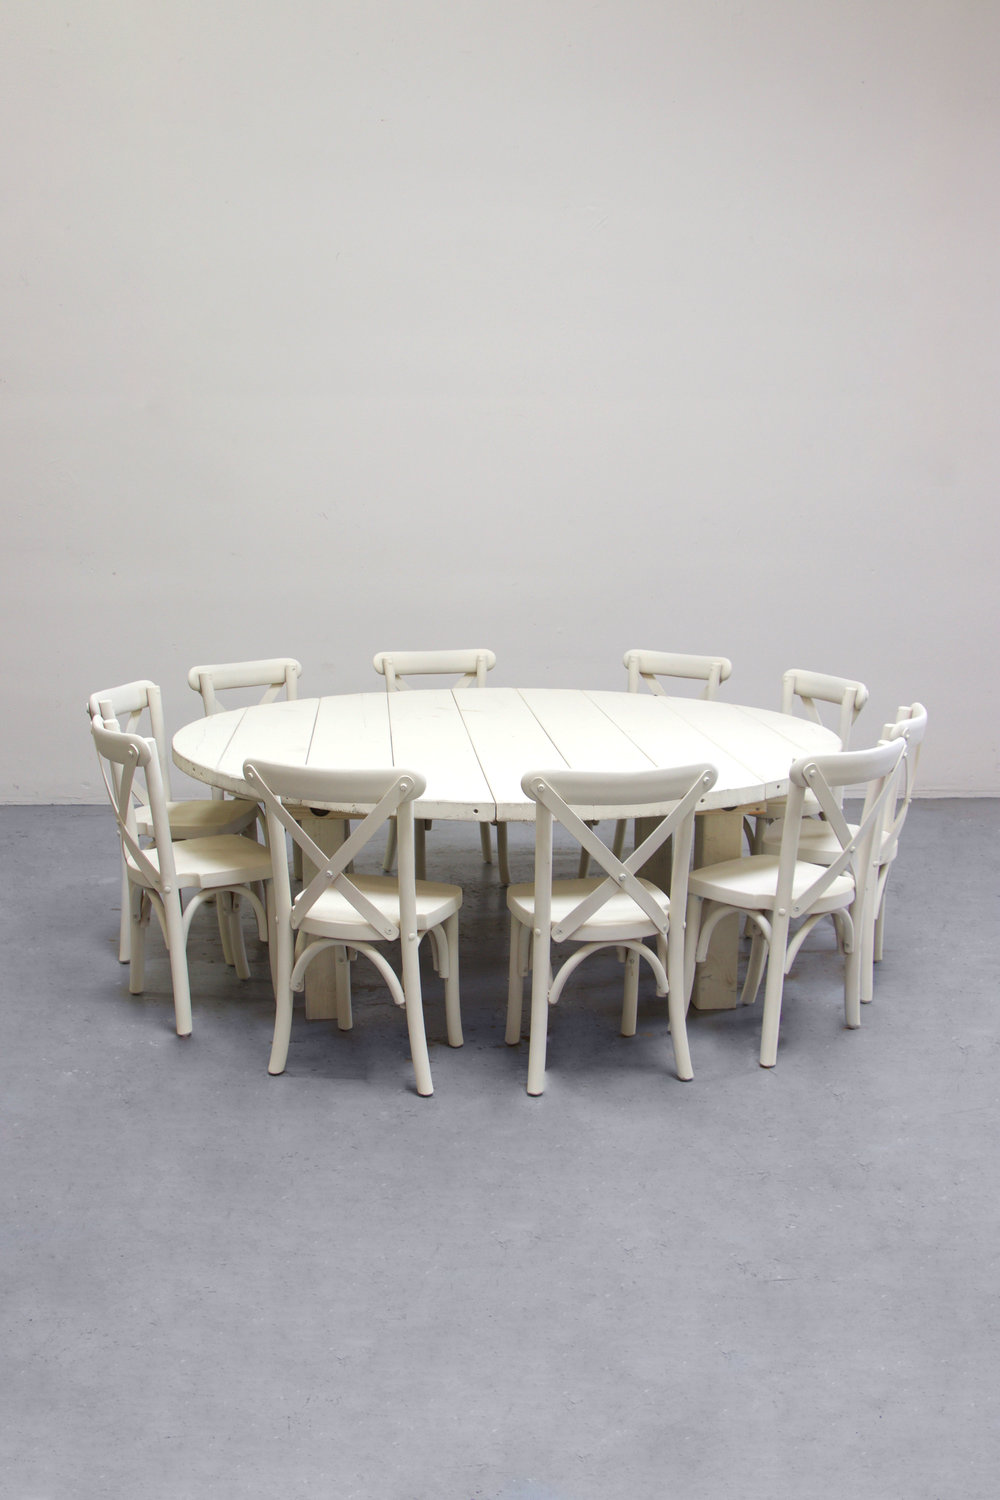 1 Kids Vintage White Round Farm Table w/ 10 Cross-Back Chairs $135